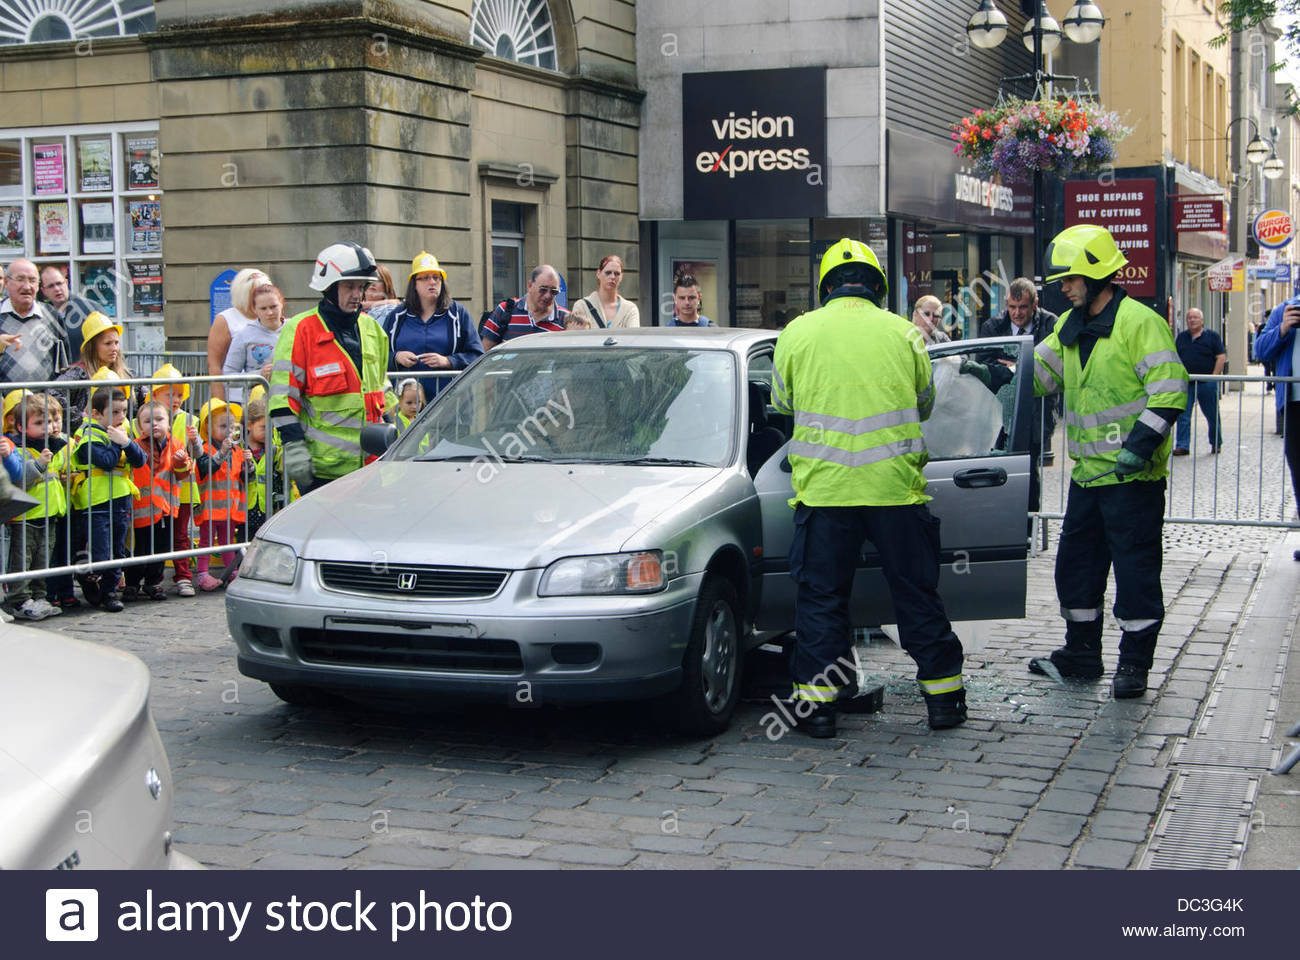 Falkirk UK on Thursday August 8 2013. Removing the doors from a vehicle in preparation for extricating the casualty. The Scottish Fire and Rescue Service ... & Falkirk UK on Thursday August 8 2013. Removing the doors from a ...